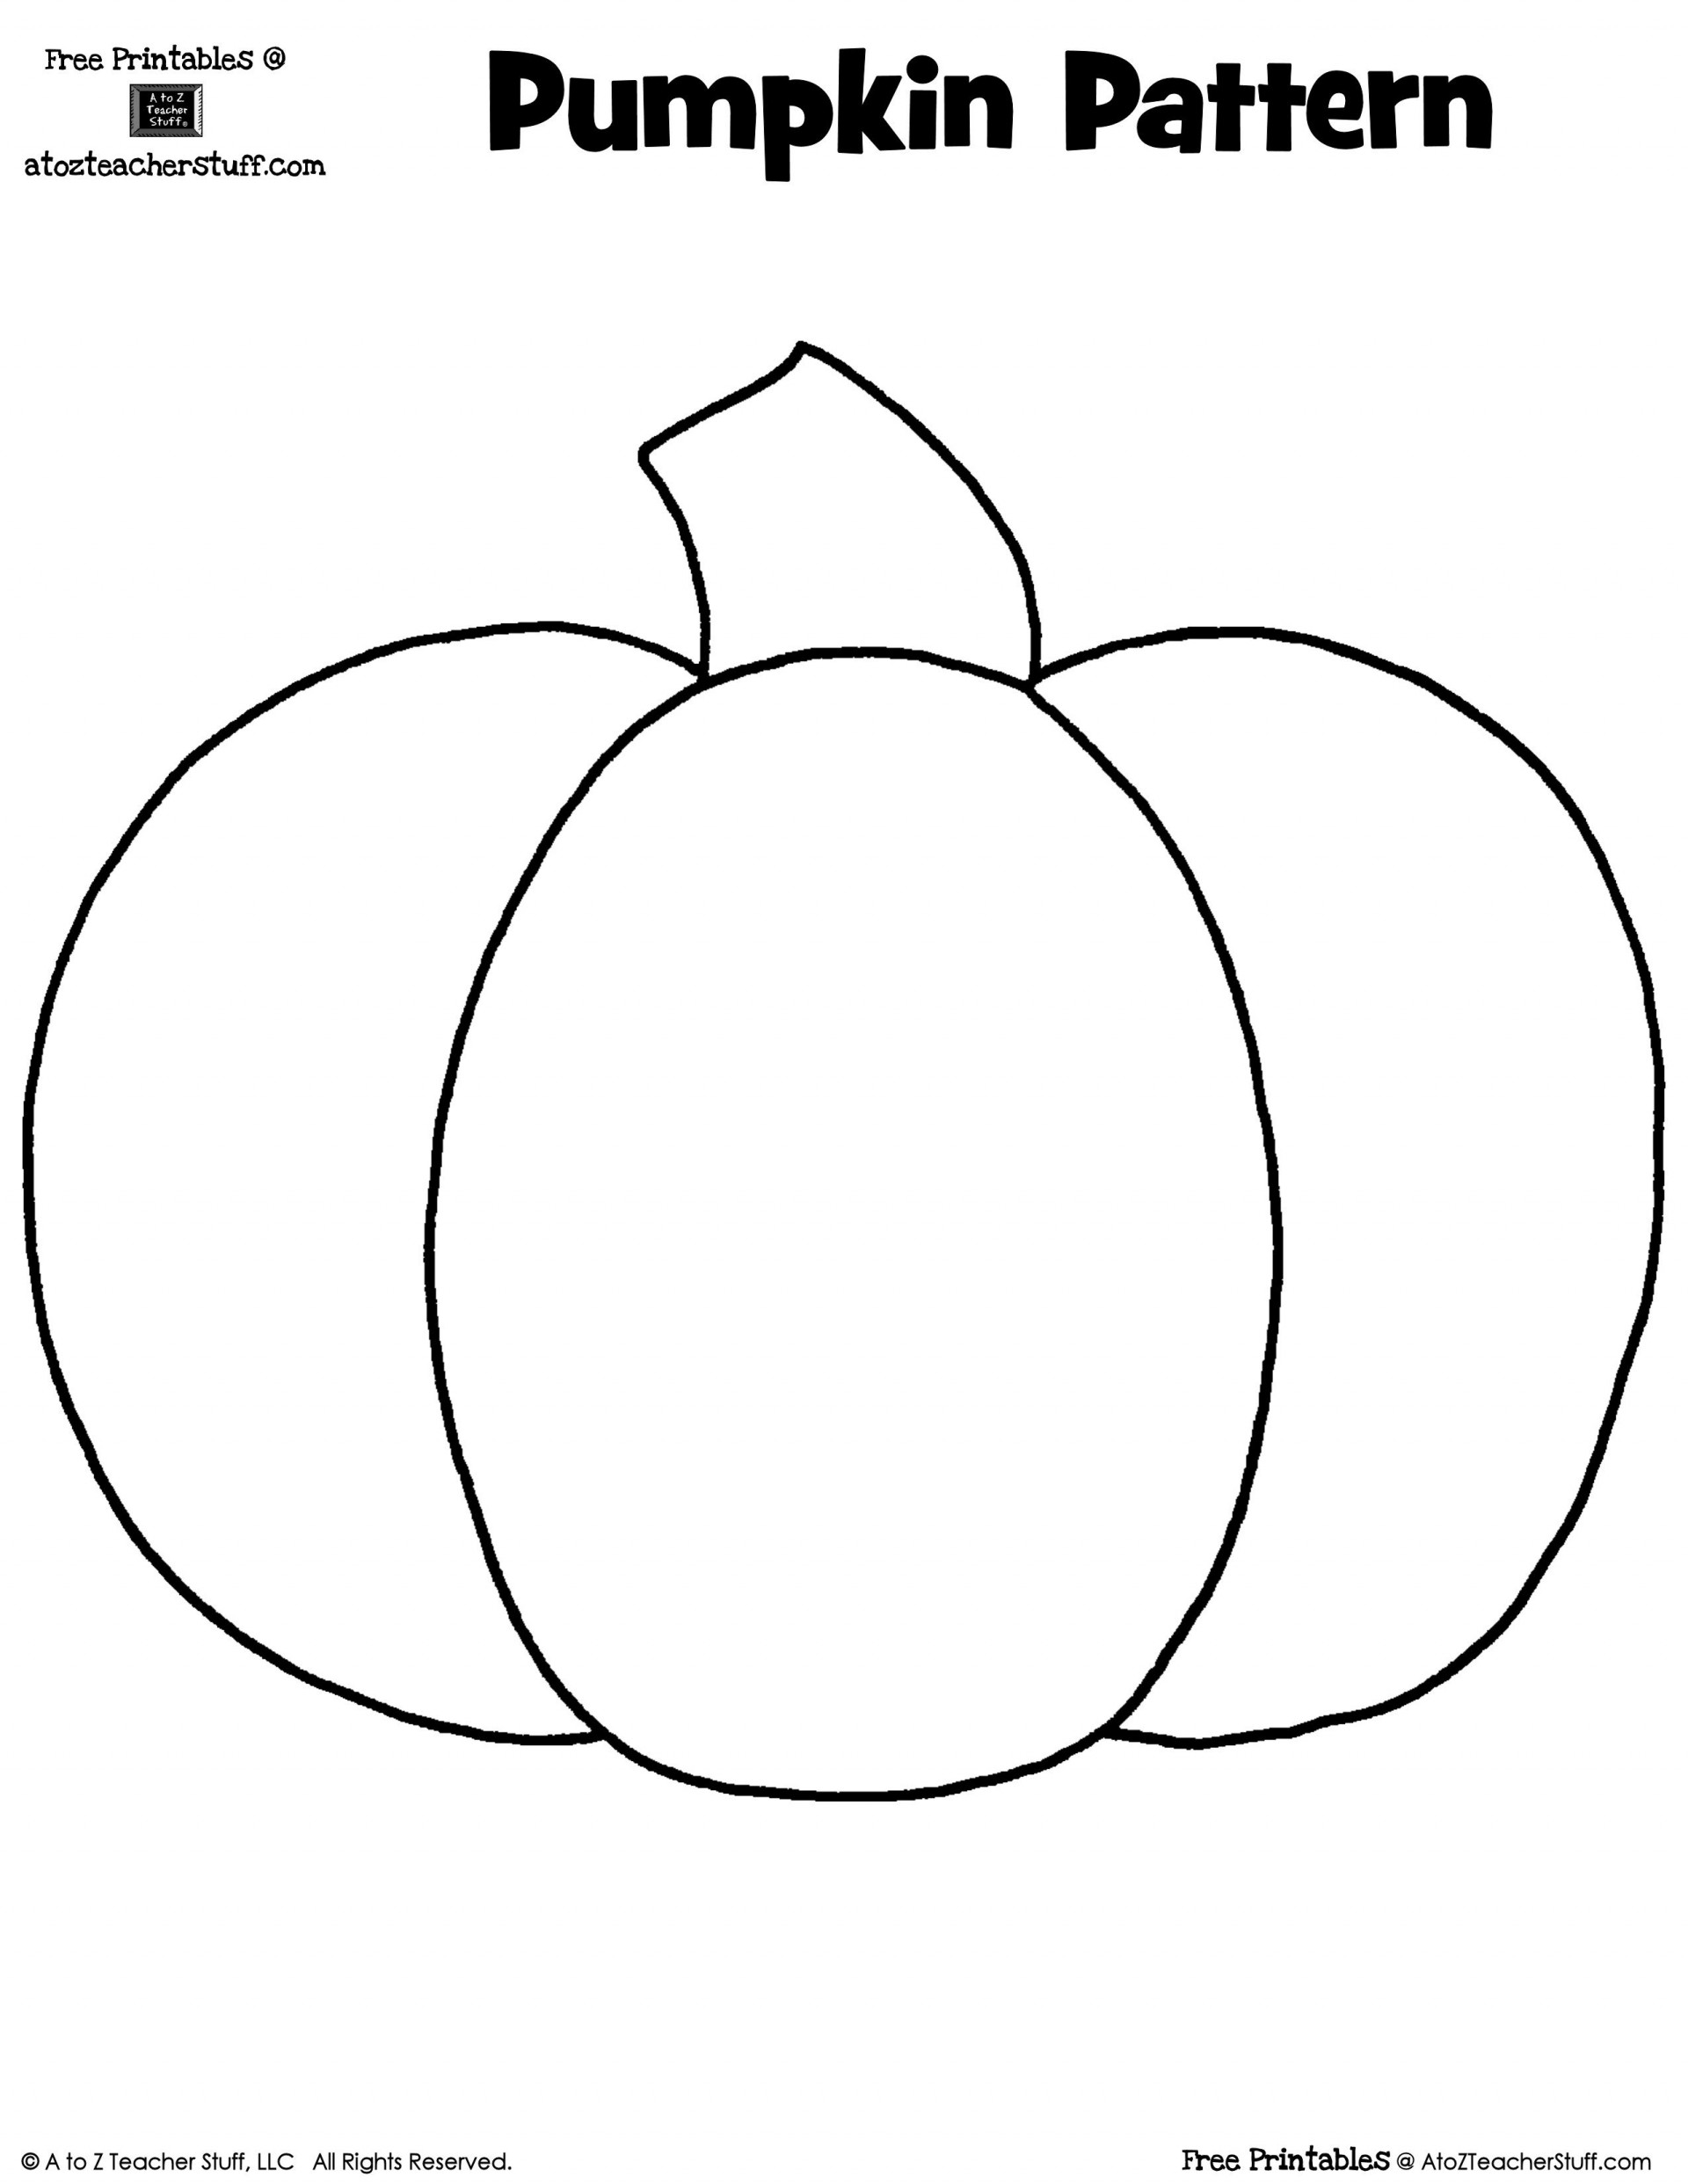 005 Frightening Free Pumpkin Template Printable High Def  Easy Carving Scary Stencil1920